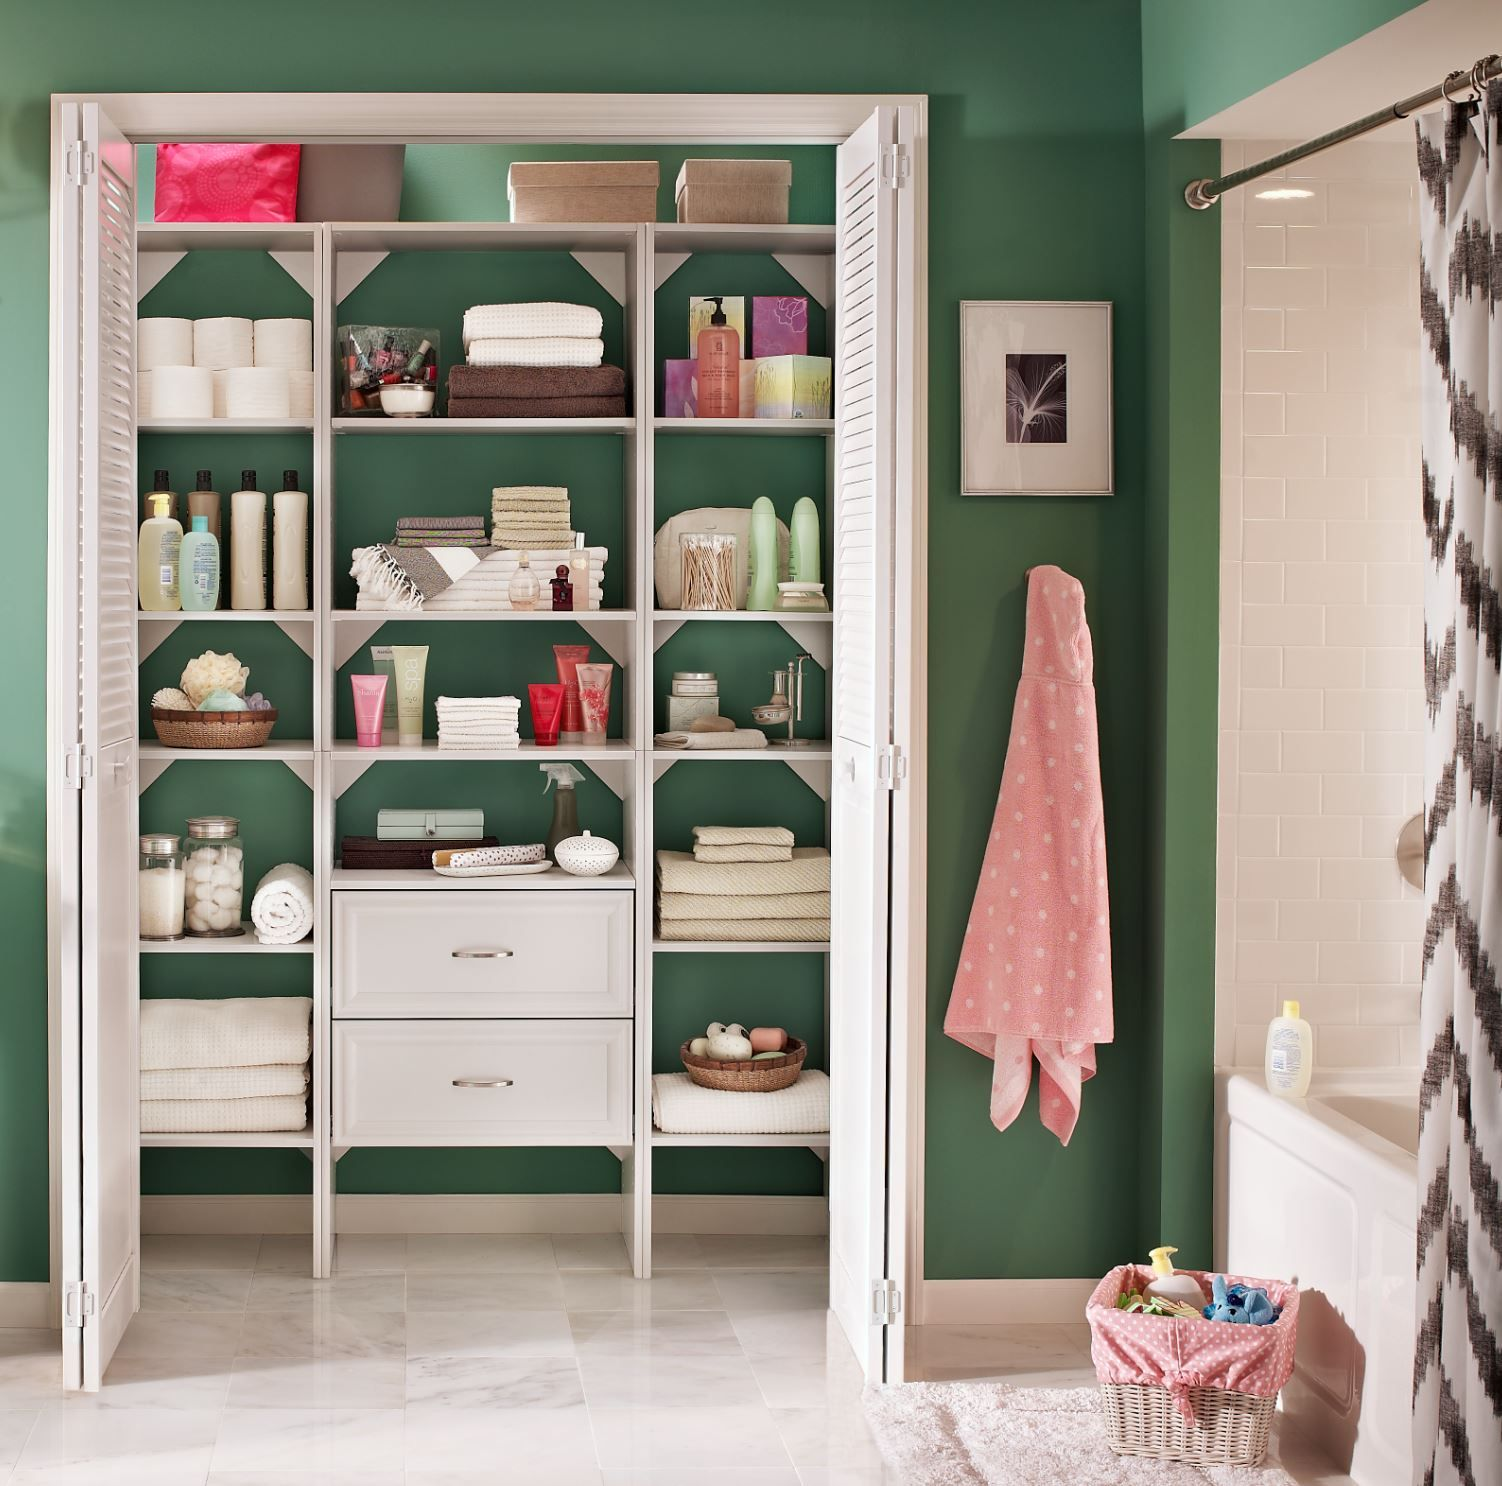 Need Your Linen Closet To Work Harder For You Add A Selectives Organizer From Homedepot Linen Closet Design Linen Closet Storage Custom Closet Organization